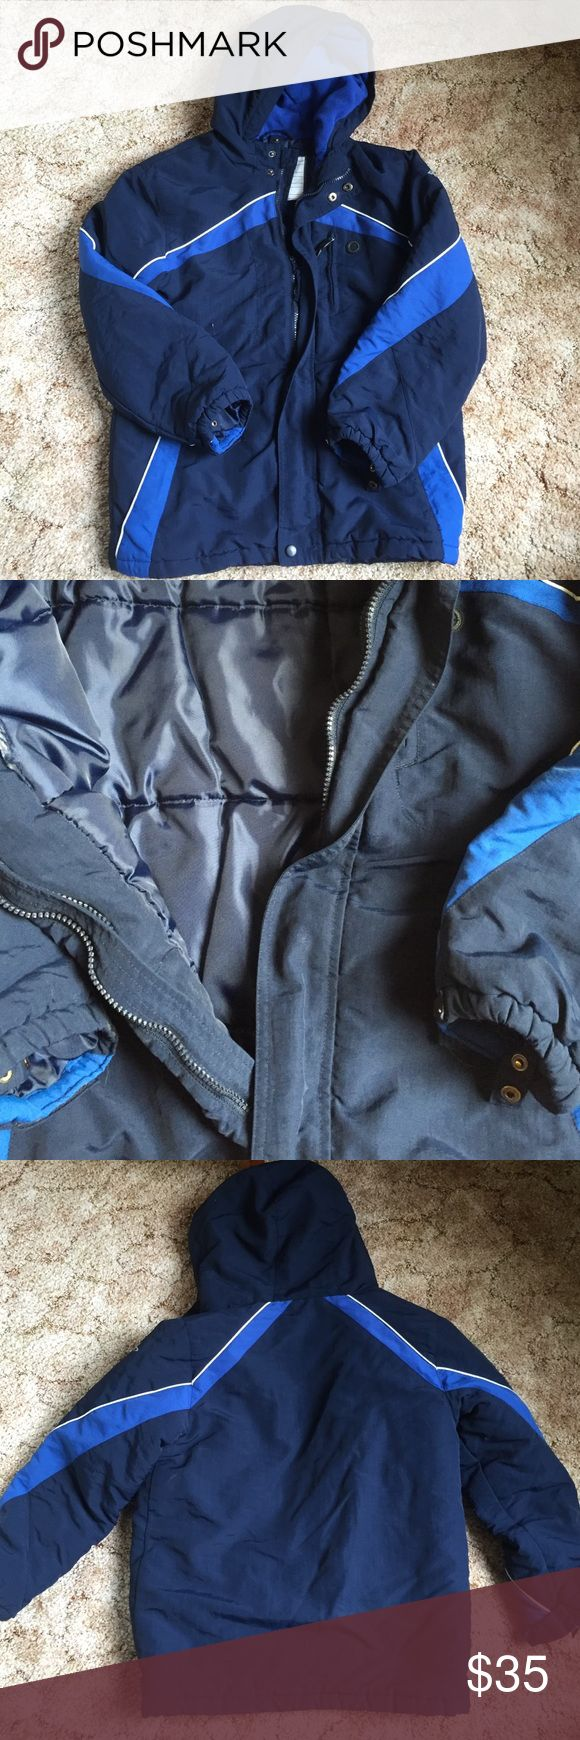 Boys Winter Coat This coat is perfect for the winter time. The outside is dark blue and light blue and comes with a hood. The inside is made with puffy material to keep you warm during the winter time. Jackets & Coats Puffers